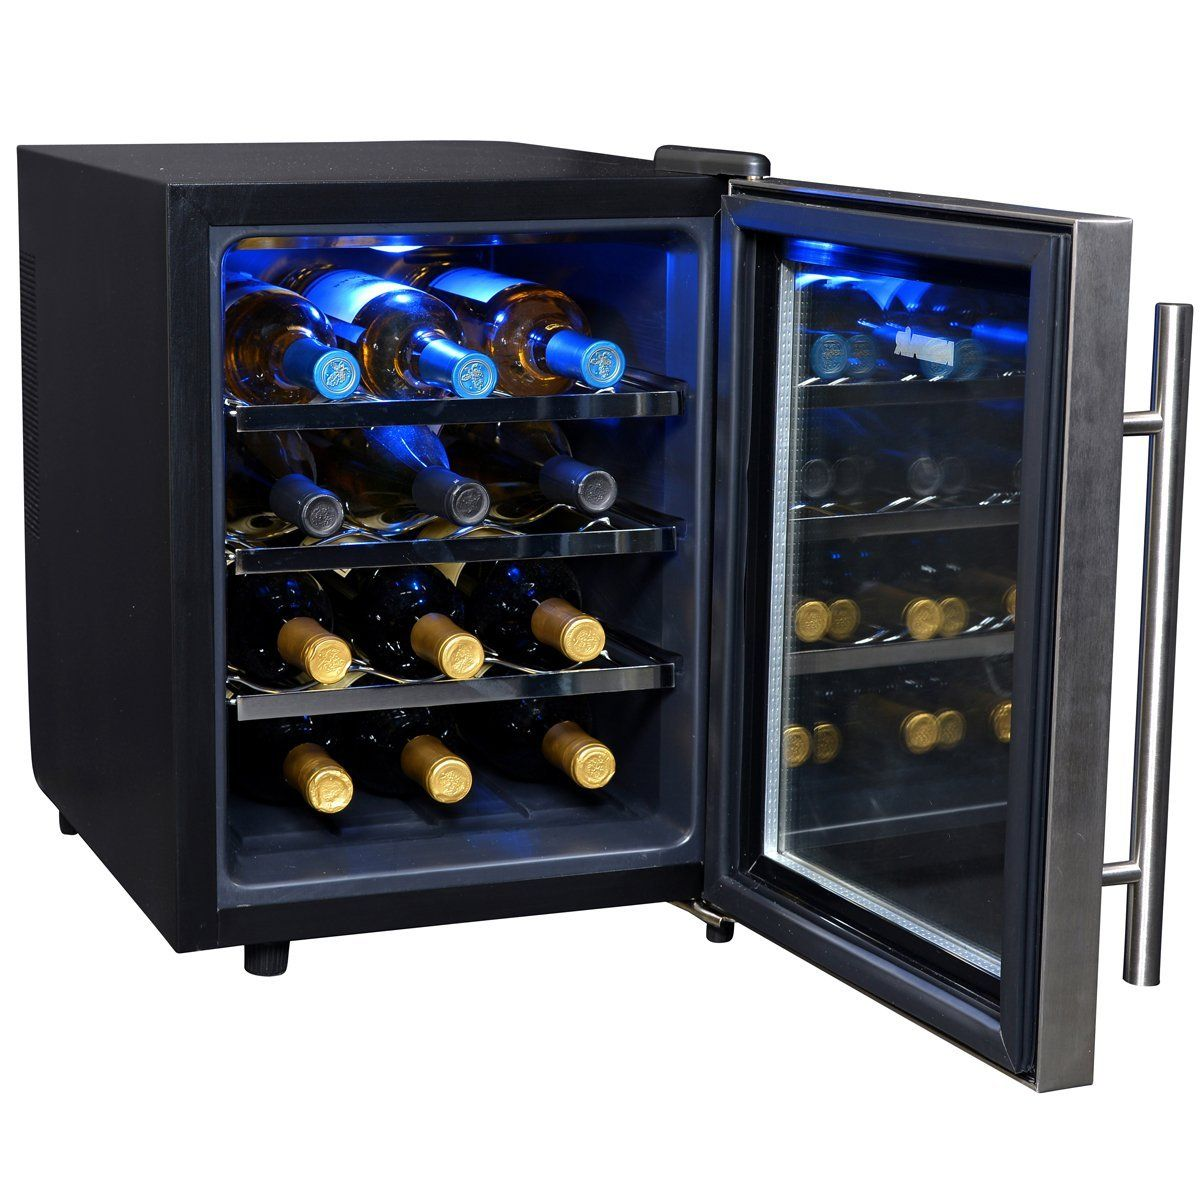 Best Wine Coolers 2021 Wine Cooler Refrigerators Market: Adoption Forecasts, Top Products